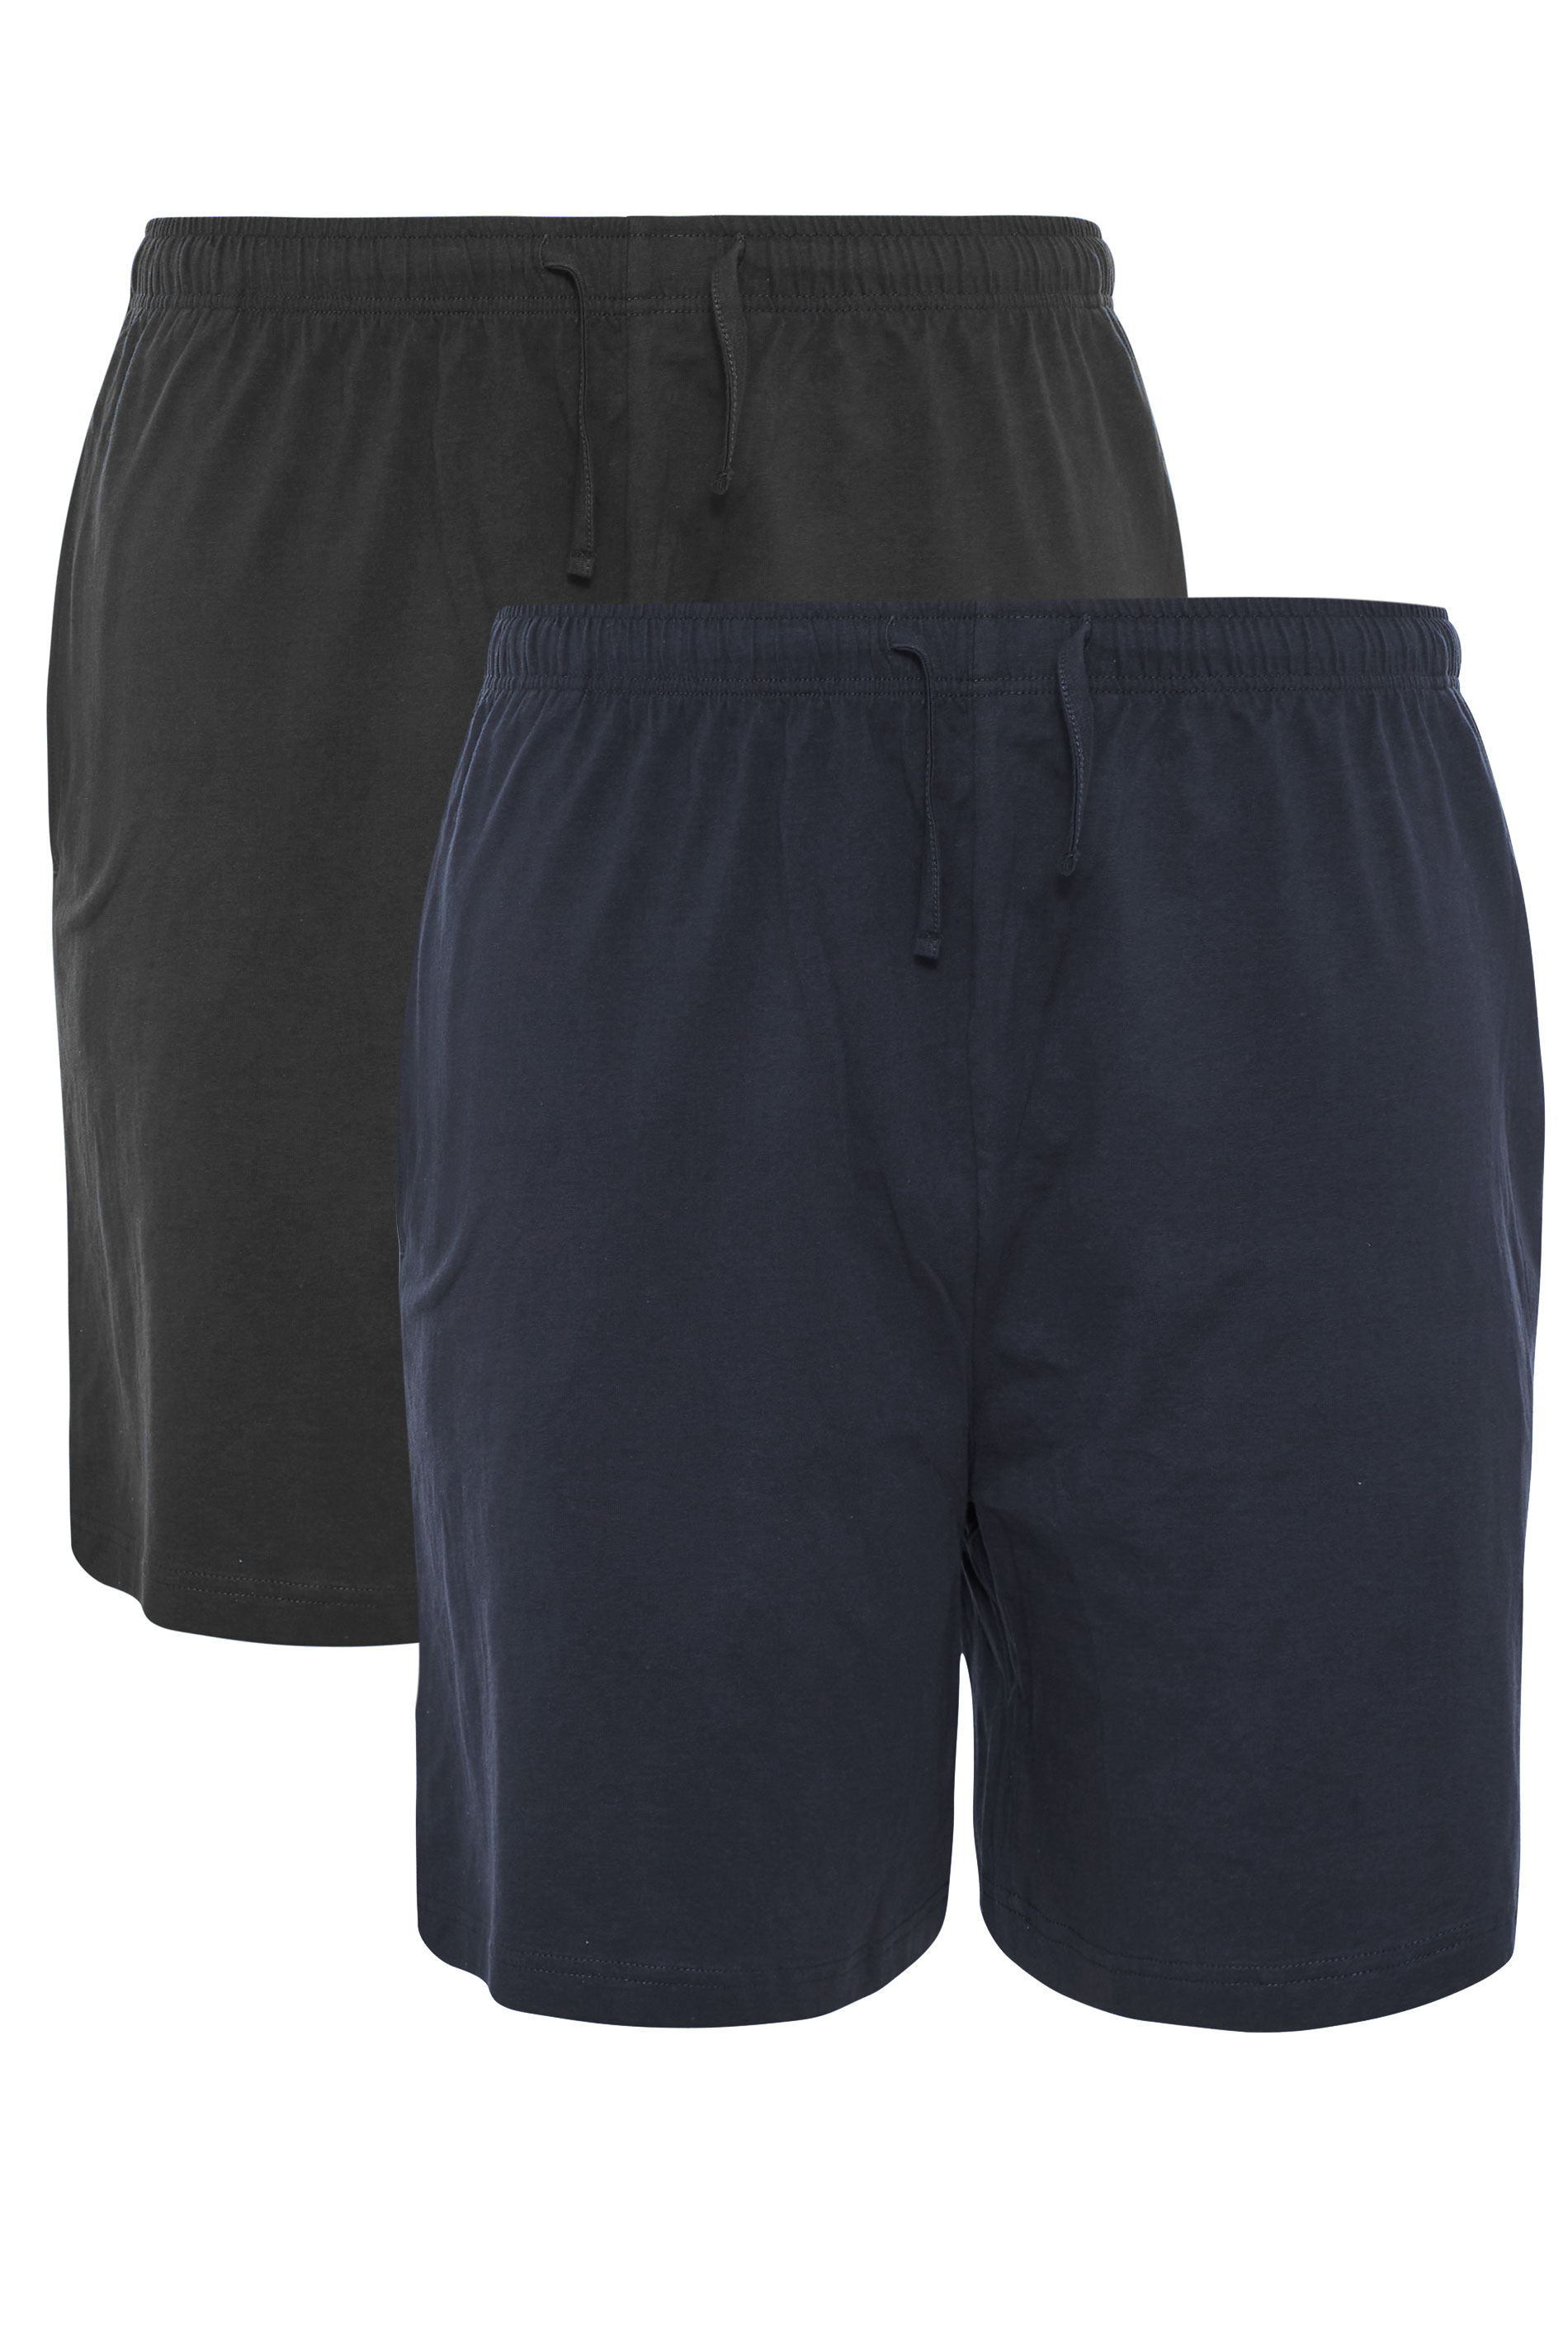 ESPIONAGE Black and Navy Twin Pack Shorts